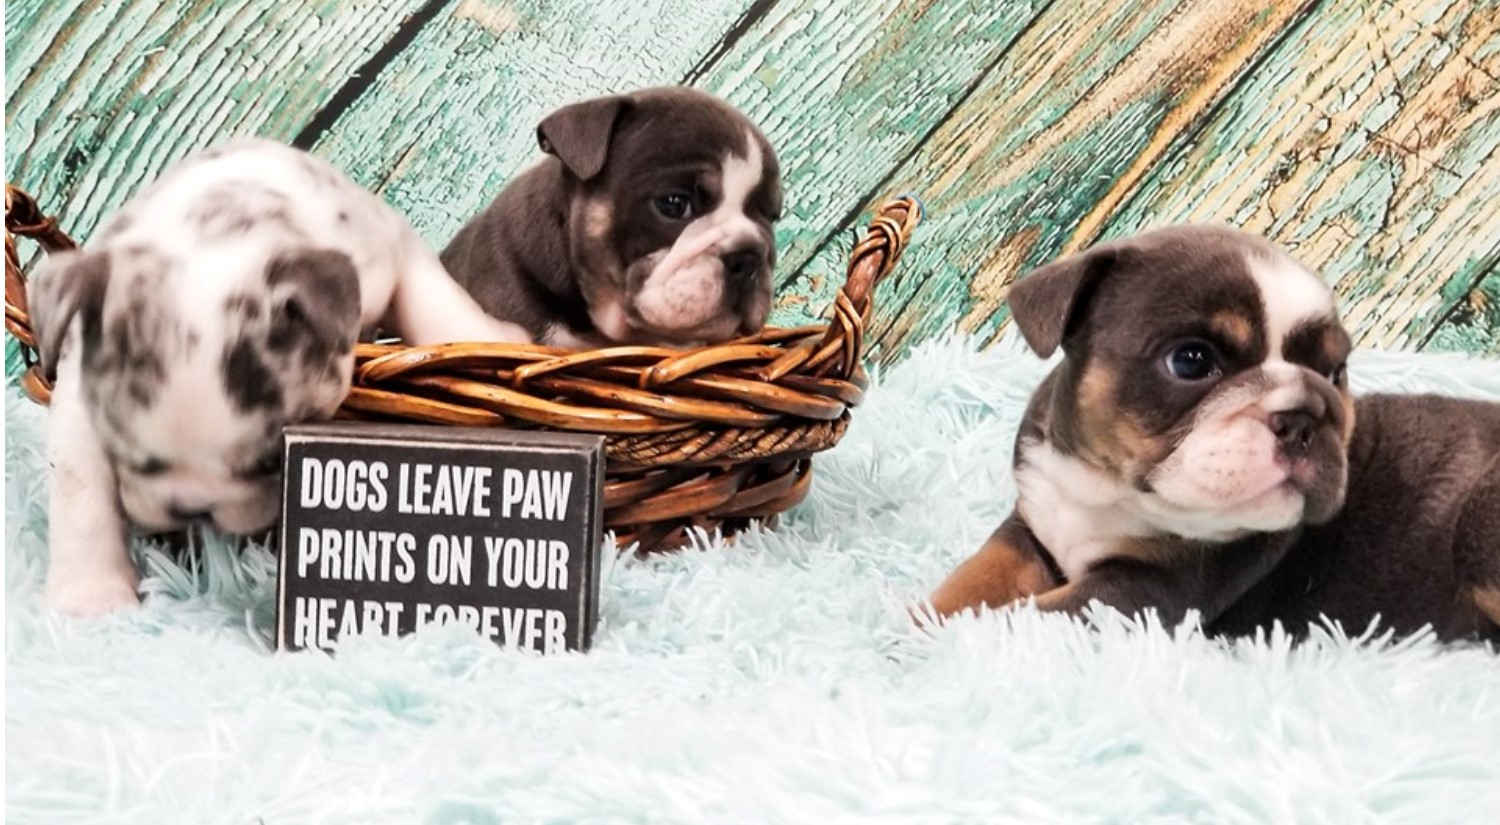 chance, mcneil, dog, breeder, puppies, chance-mcneil, dog-breeder, harrisburg, sd, south-dakota, puppy, dog, kennels, mill, puppymill, usda, 5-star, certificate, frenchies, bulldogs, ACA, registered